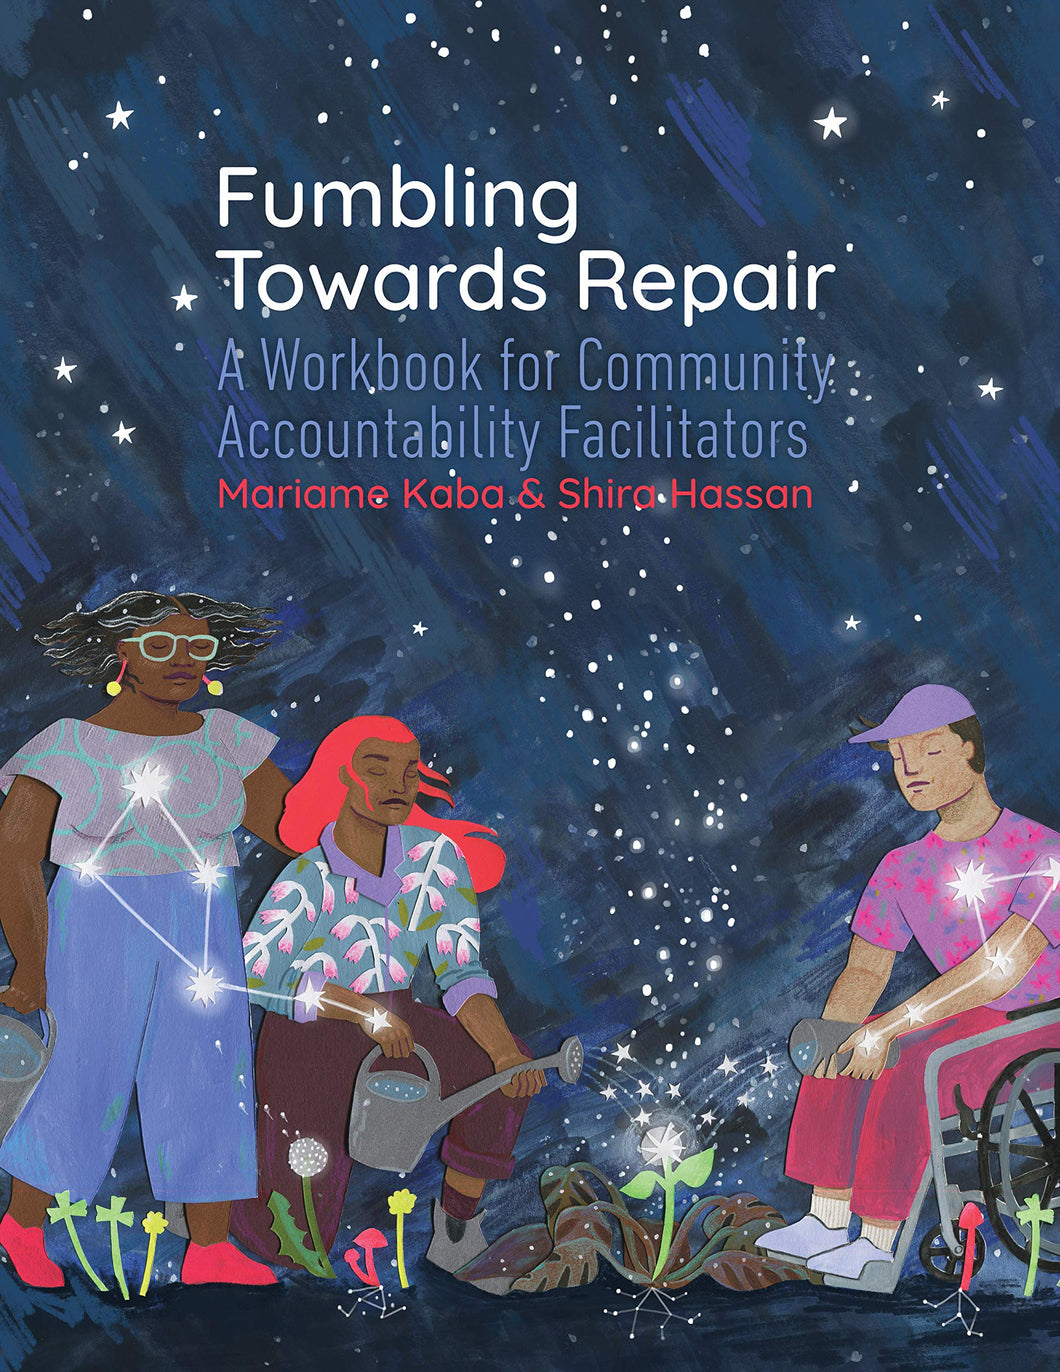 Fumbling Towards Repair: A Workbook for Community Accountability Facilitators by Mariame Kaba (Back-Order, March 7)